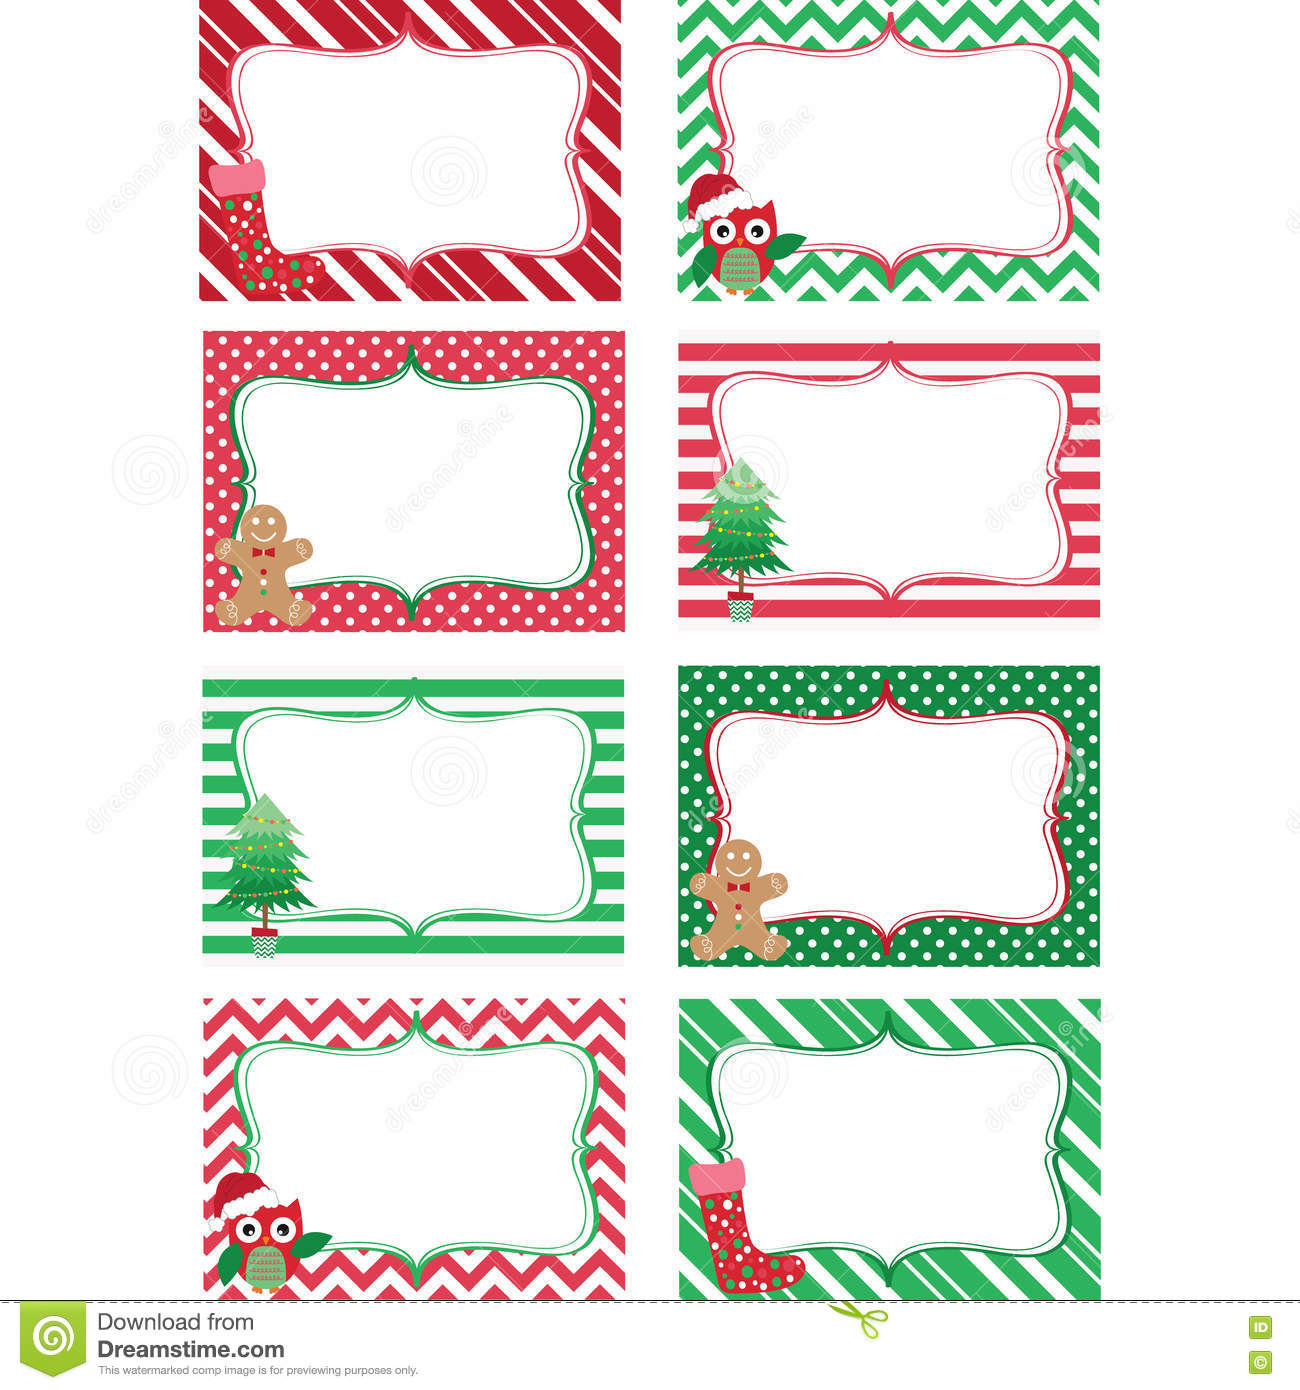 Christmas Printable Labels Setoto Frame T Tags Invitation Stock Vector